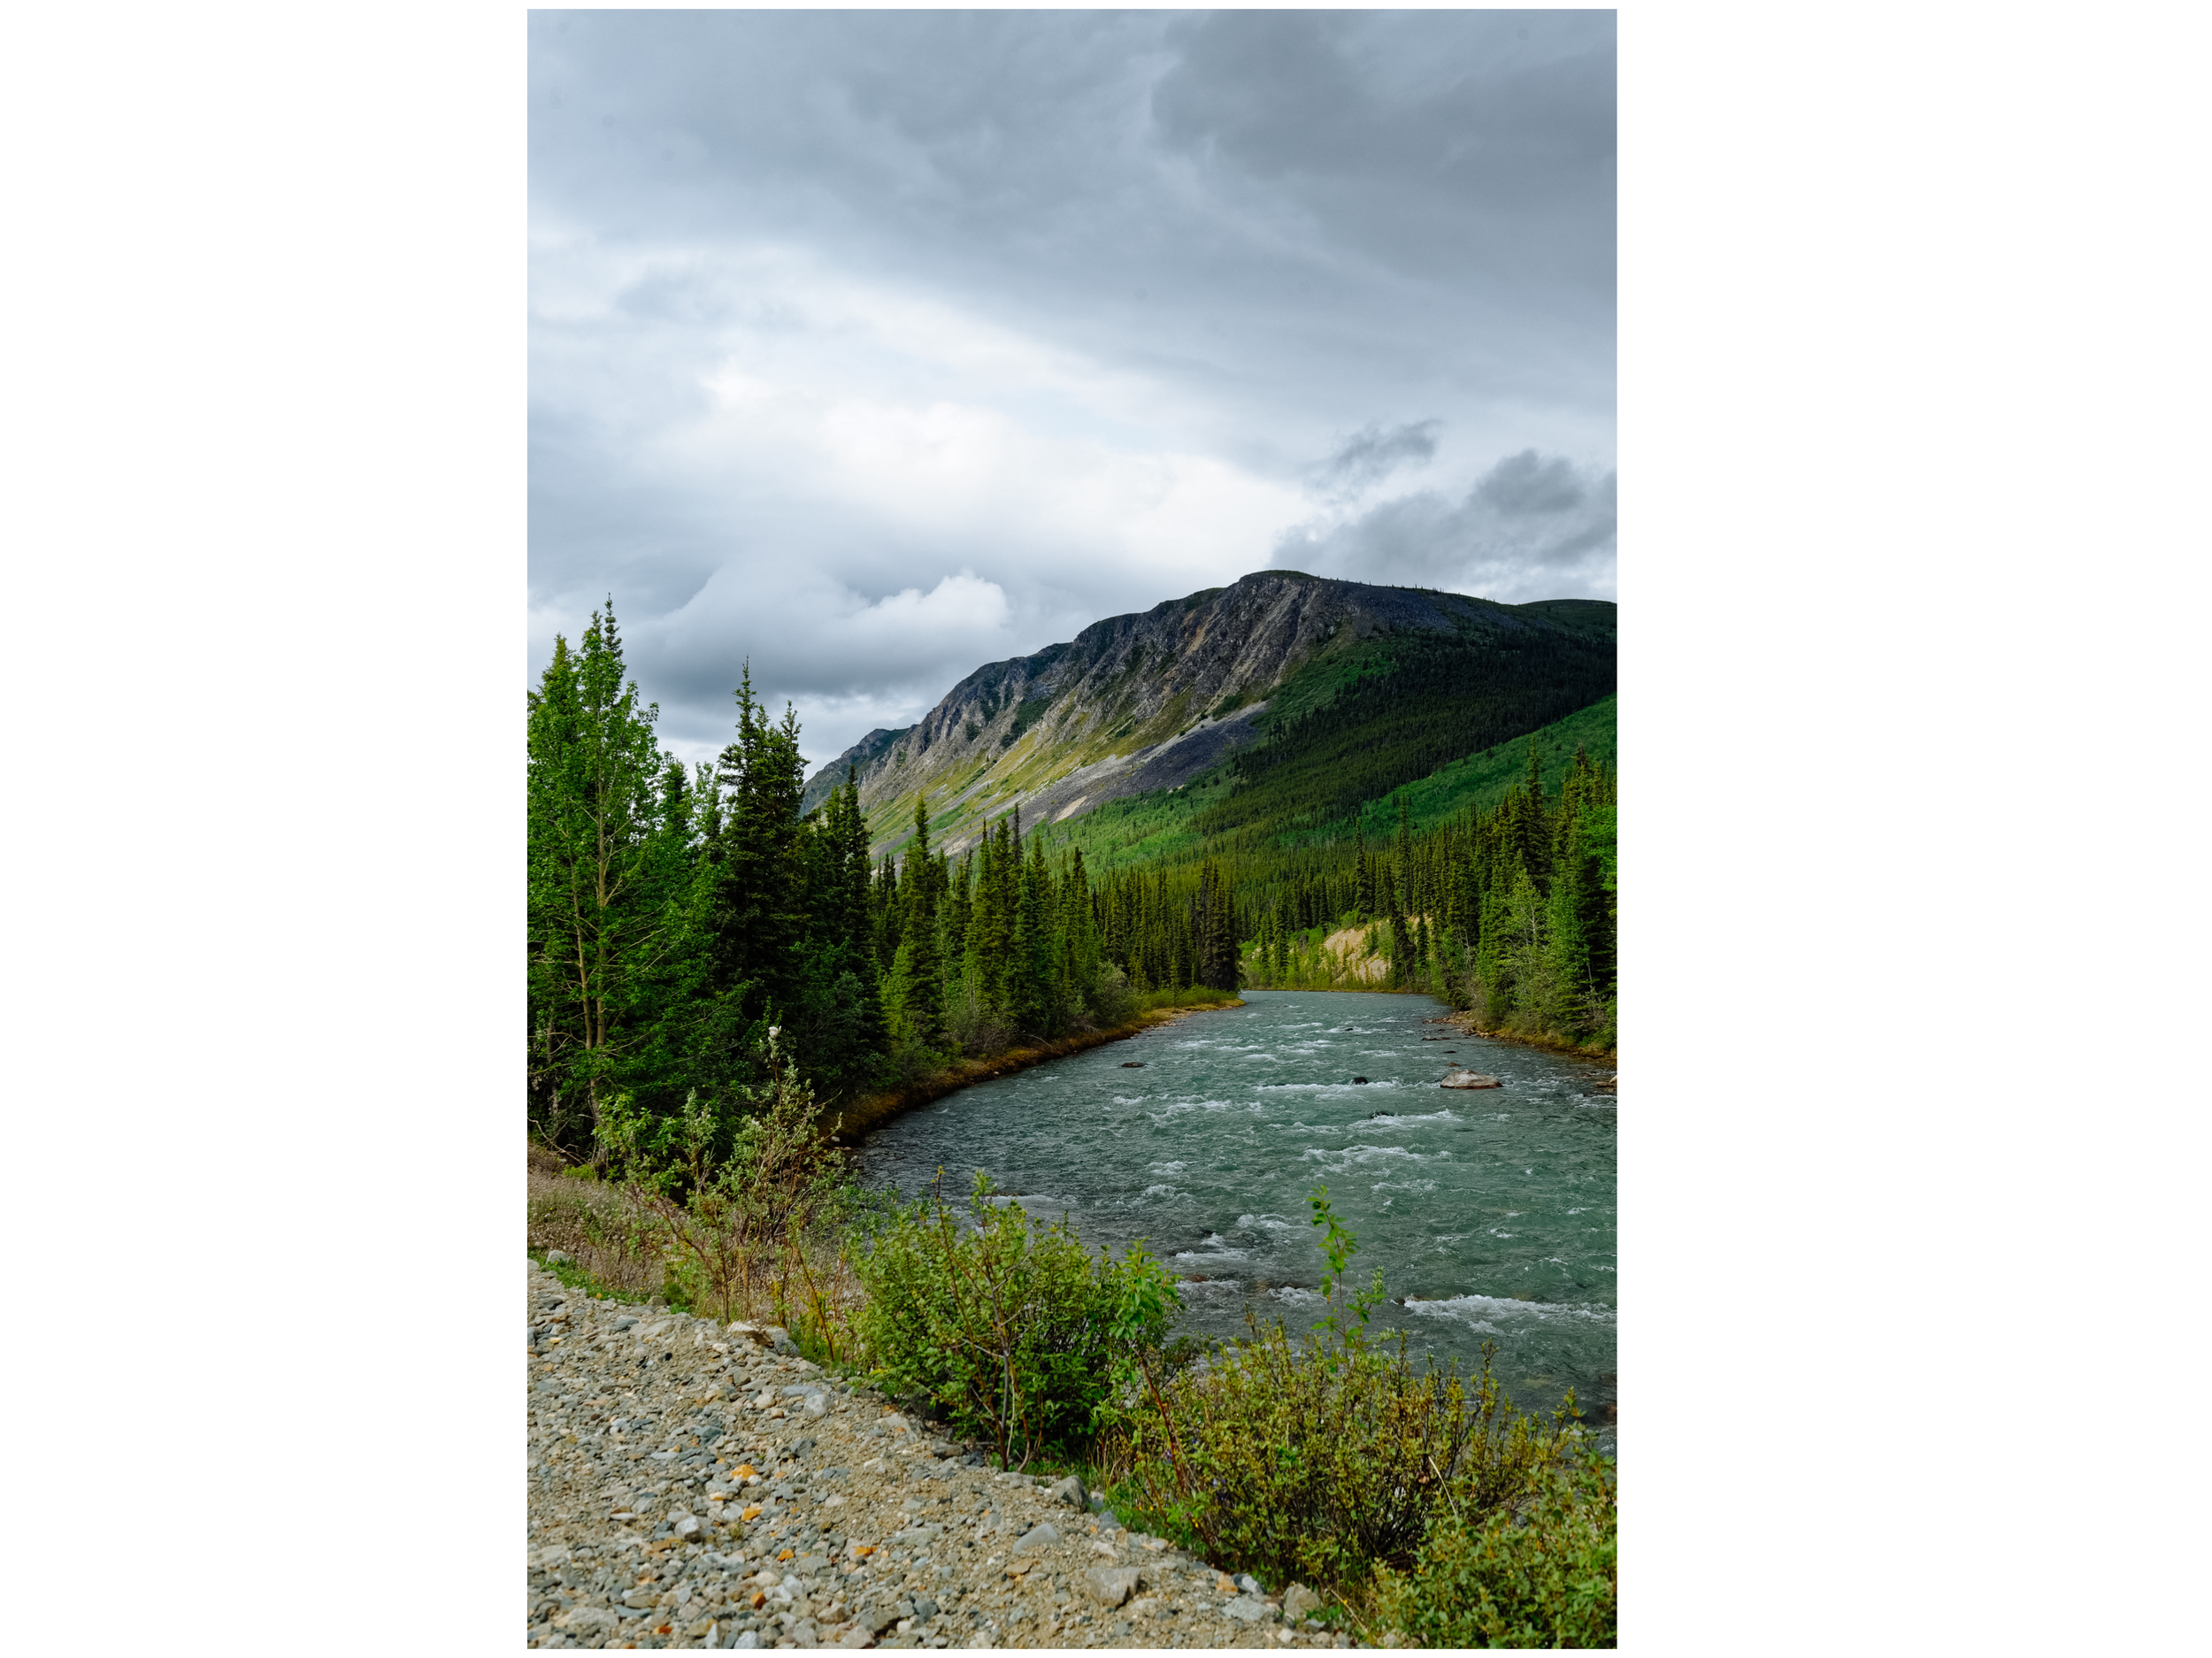 Mt. Anderson is located in the beautiful Wheaton River Valley.